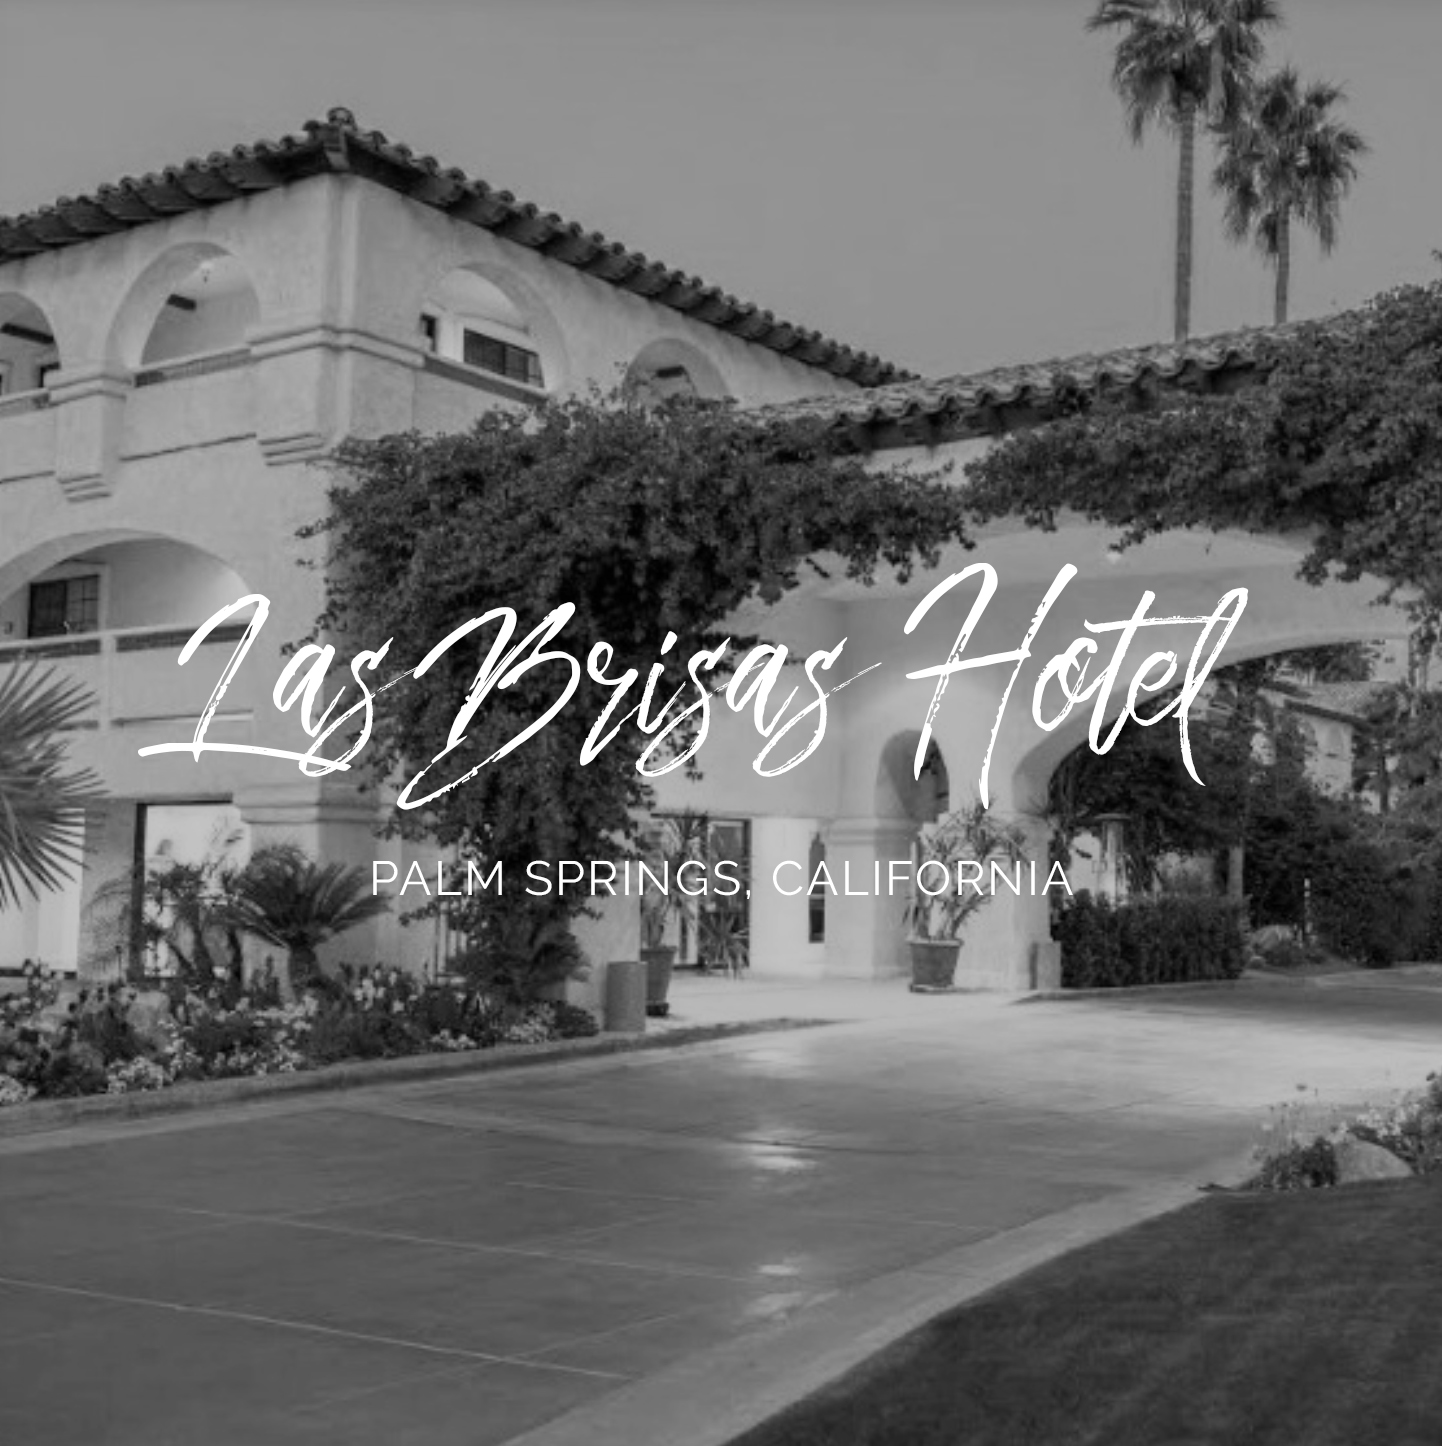 Repositioned as a full-service property within a niche market segment, Las Brisas Hotel is now… - …one of the top performing hotels in downtown Palm Springs. We acquired the 90-room Las Brisas Hotel in in 1991 and repositioned the property from an independent midscale hotel in foreclosure to one of the top performing hotels in downtown Palm Springs. Through the repositioning of the hotel between the four diamond and limited service properties, the property benefits from a niche market in downtown Palm Springs.The food & beverage operation was expanded, tripling its capacity, including the conversion of meeting space to a dedicated breakfast room. With limited back-of-house area, we added a new exterior terrace grill, specialized equipment to the kitchen and bar areas, and implemented innovative measures to offer an assorted menu that delivers a full service atmosphere for our guests to enjoy. Furthermore we invested heavily into the landscaping and architectural elements of the public areas to create an oasis for our guests to enjoy year round.We have a dedicated staff of 27 employees whom are cross-trained in all areas of the hotel providing an extremely efficient and profitable operation. During the past 25 years, we have created a sense of community for our associates as well as our guests, leading to incredible employee satisfaction with an average retention of 16 years and a repeat customer base of 75%. Our exceptional guest loyalty enables us to retain our position as the occupancy leader in the downtown market largely through word-of-mouth with a minimal marketing budget.